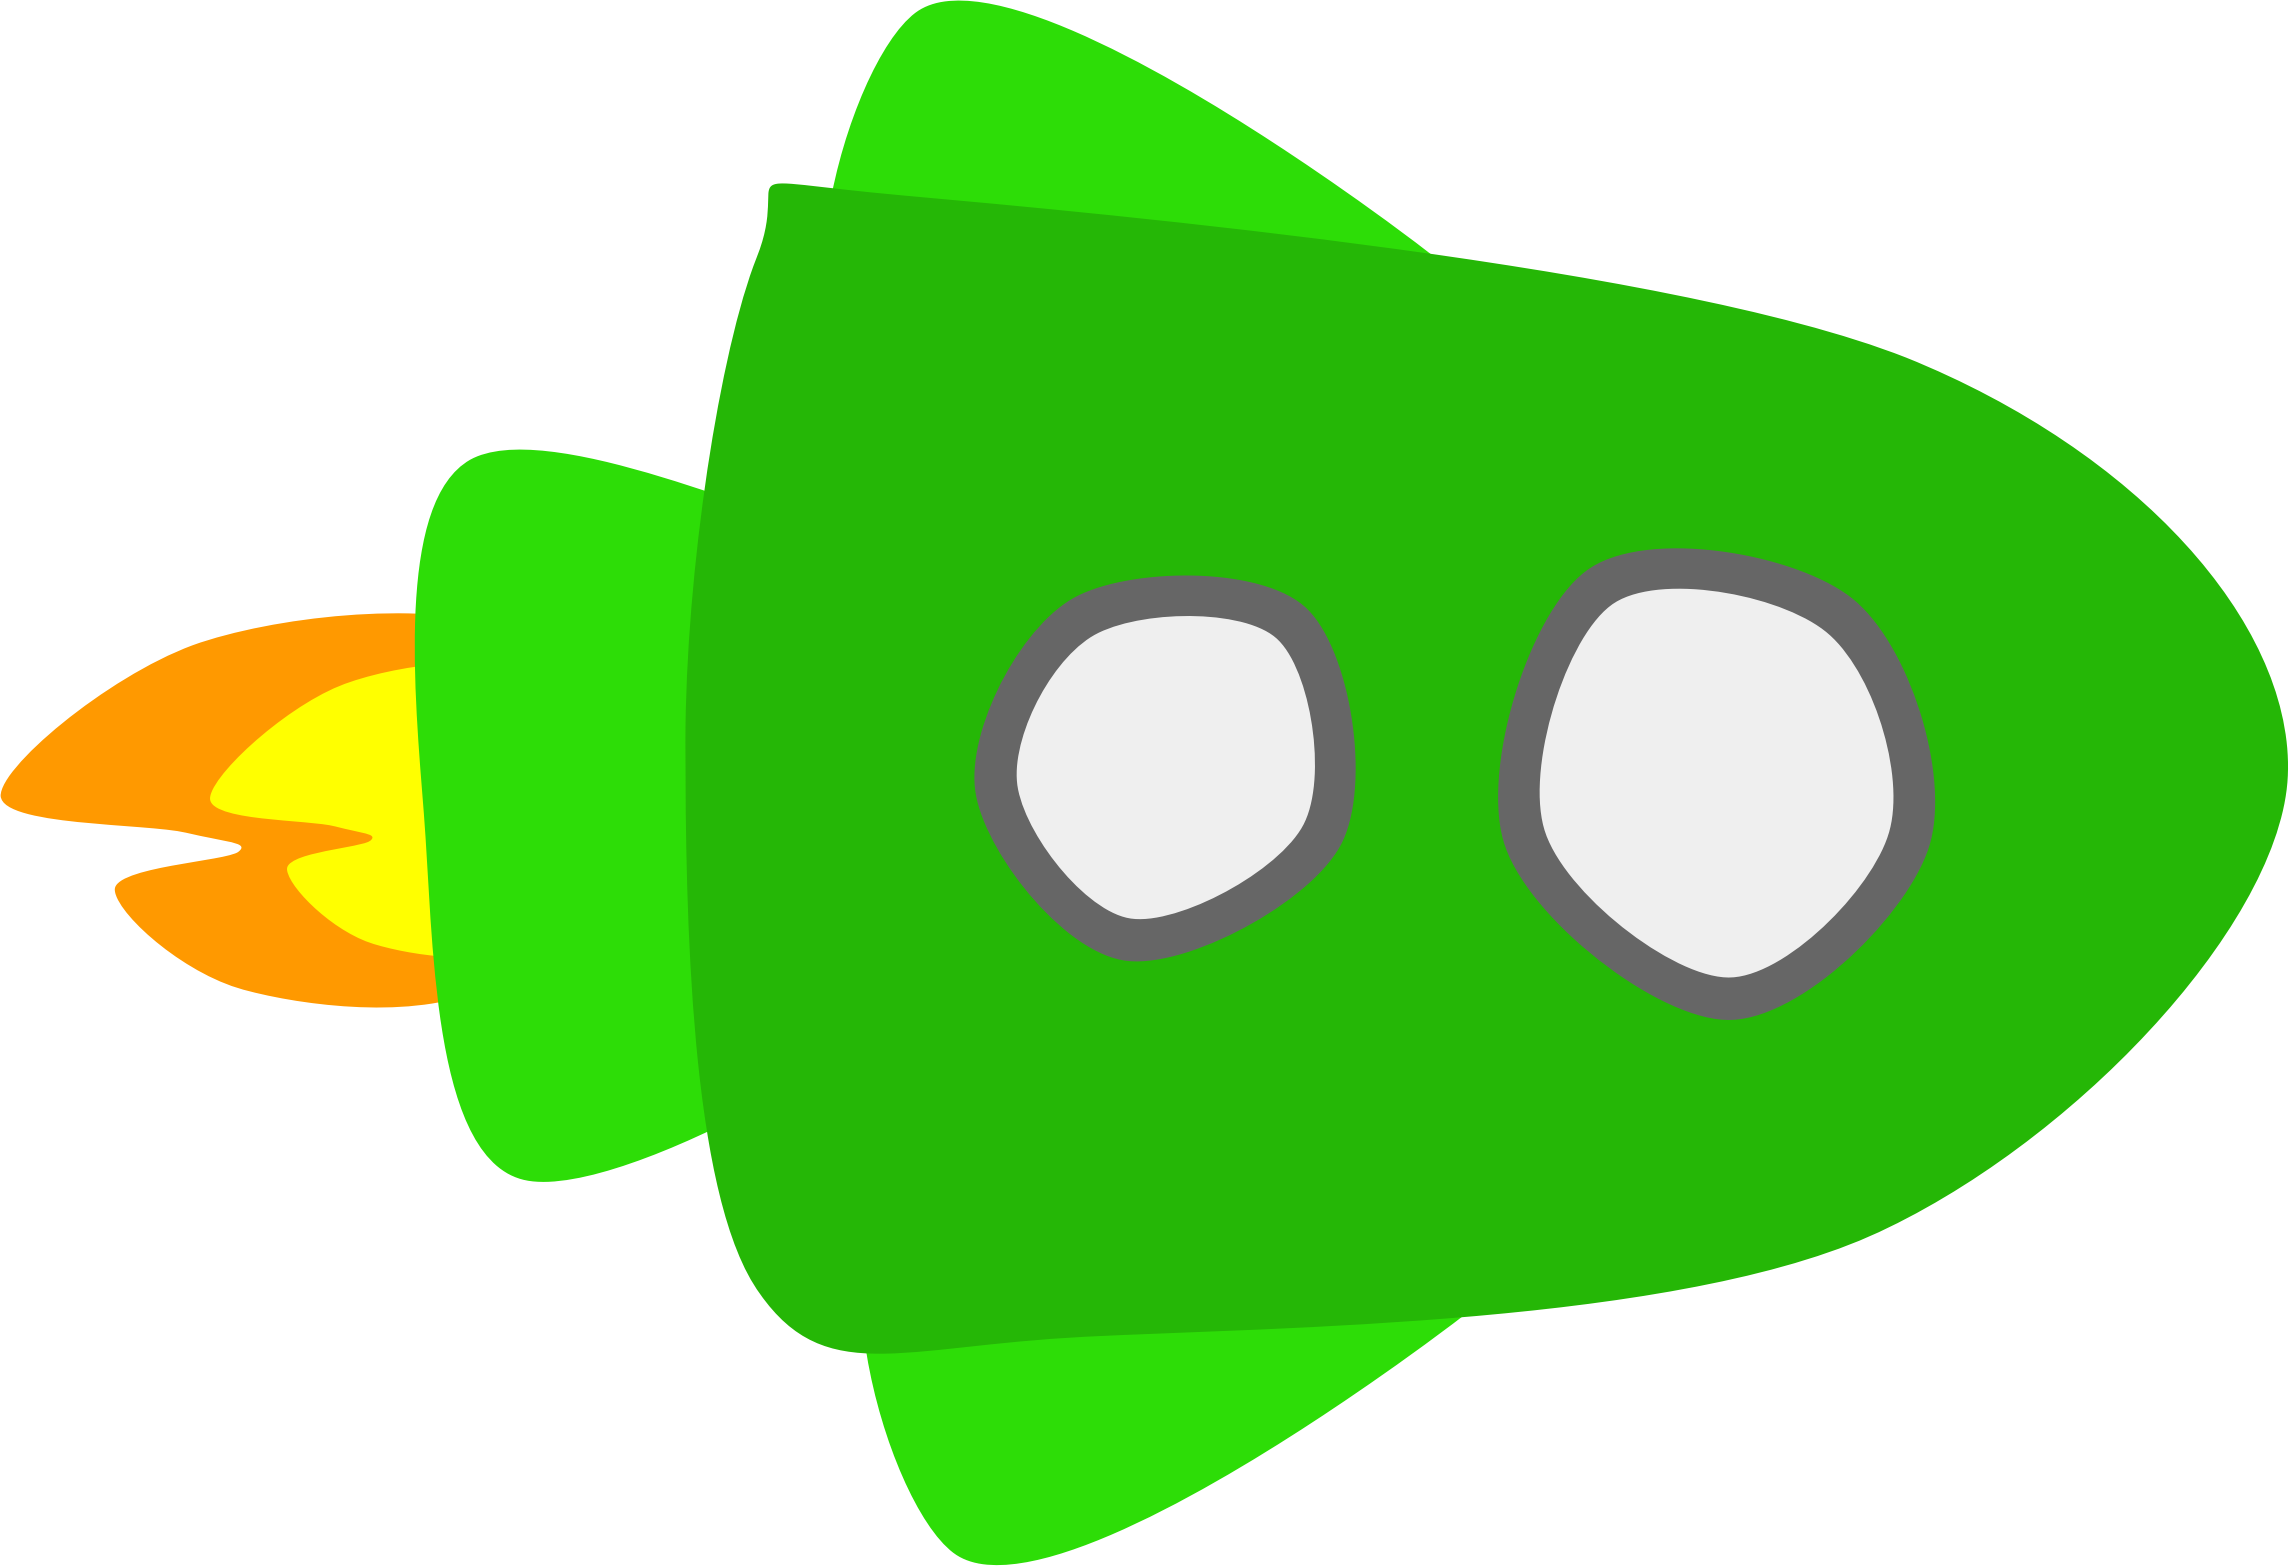 Green big image png. Spaceship clipart svg